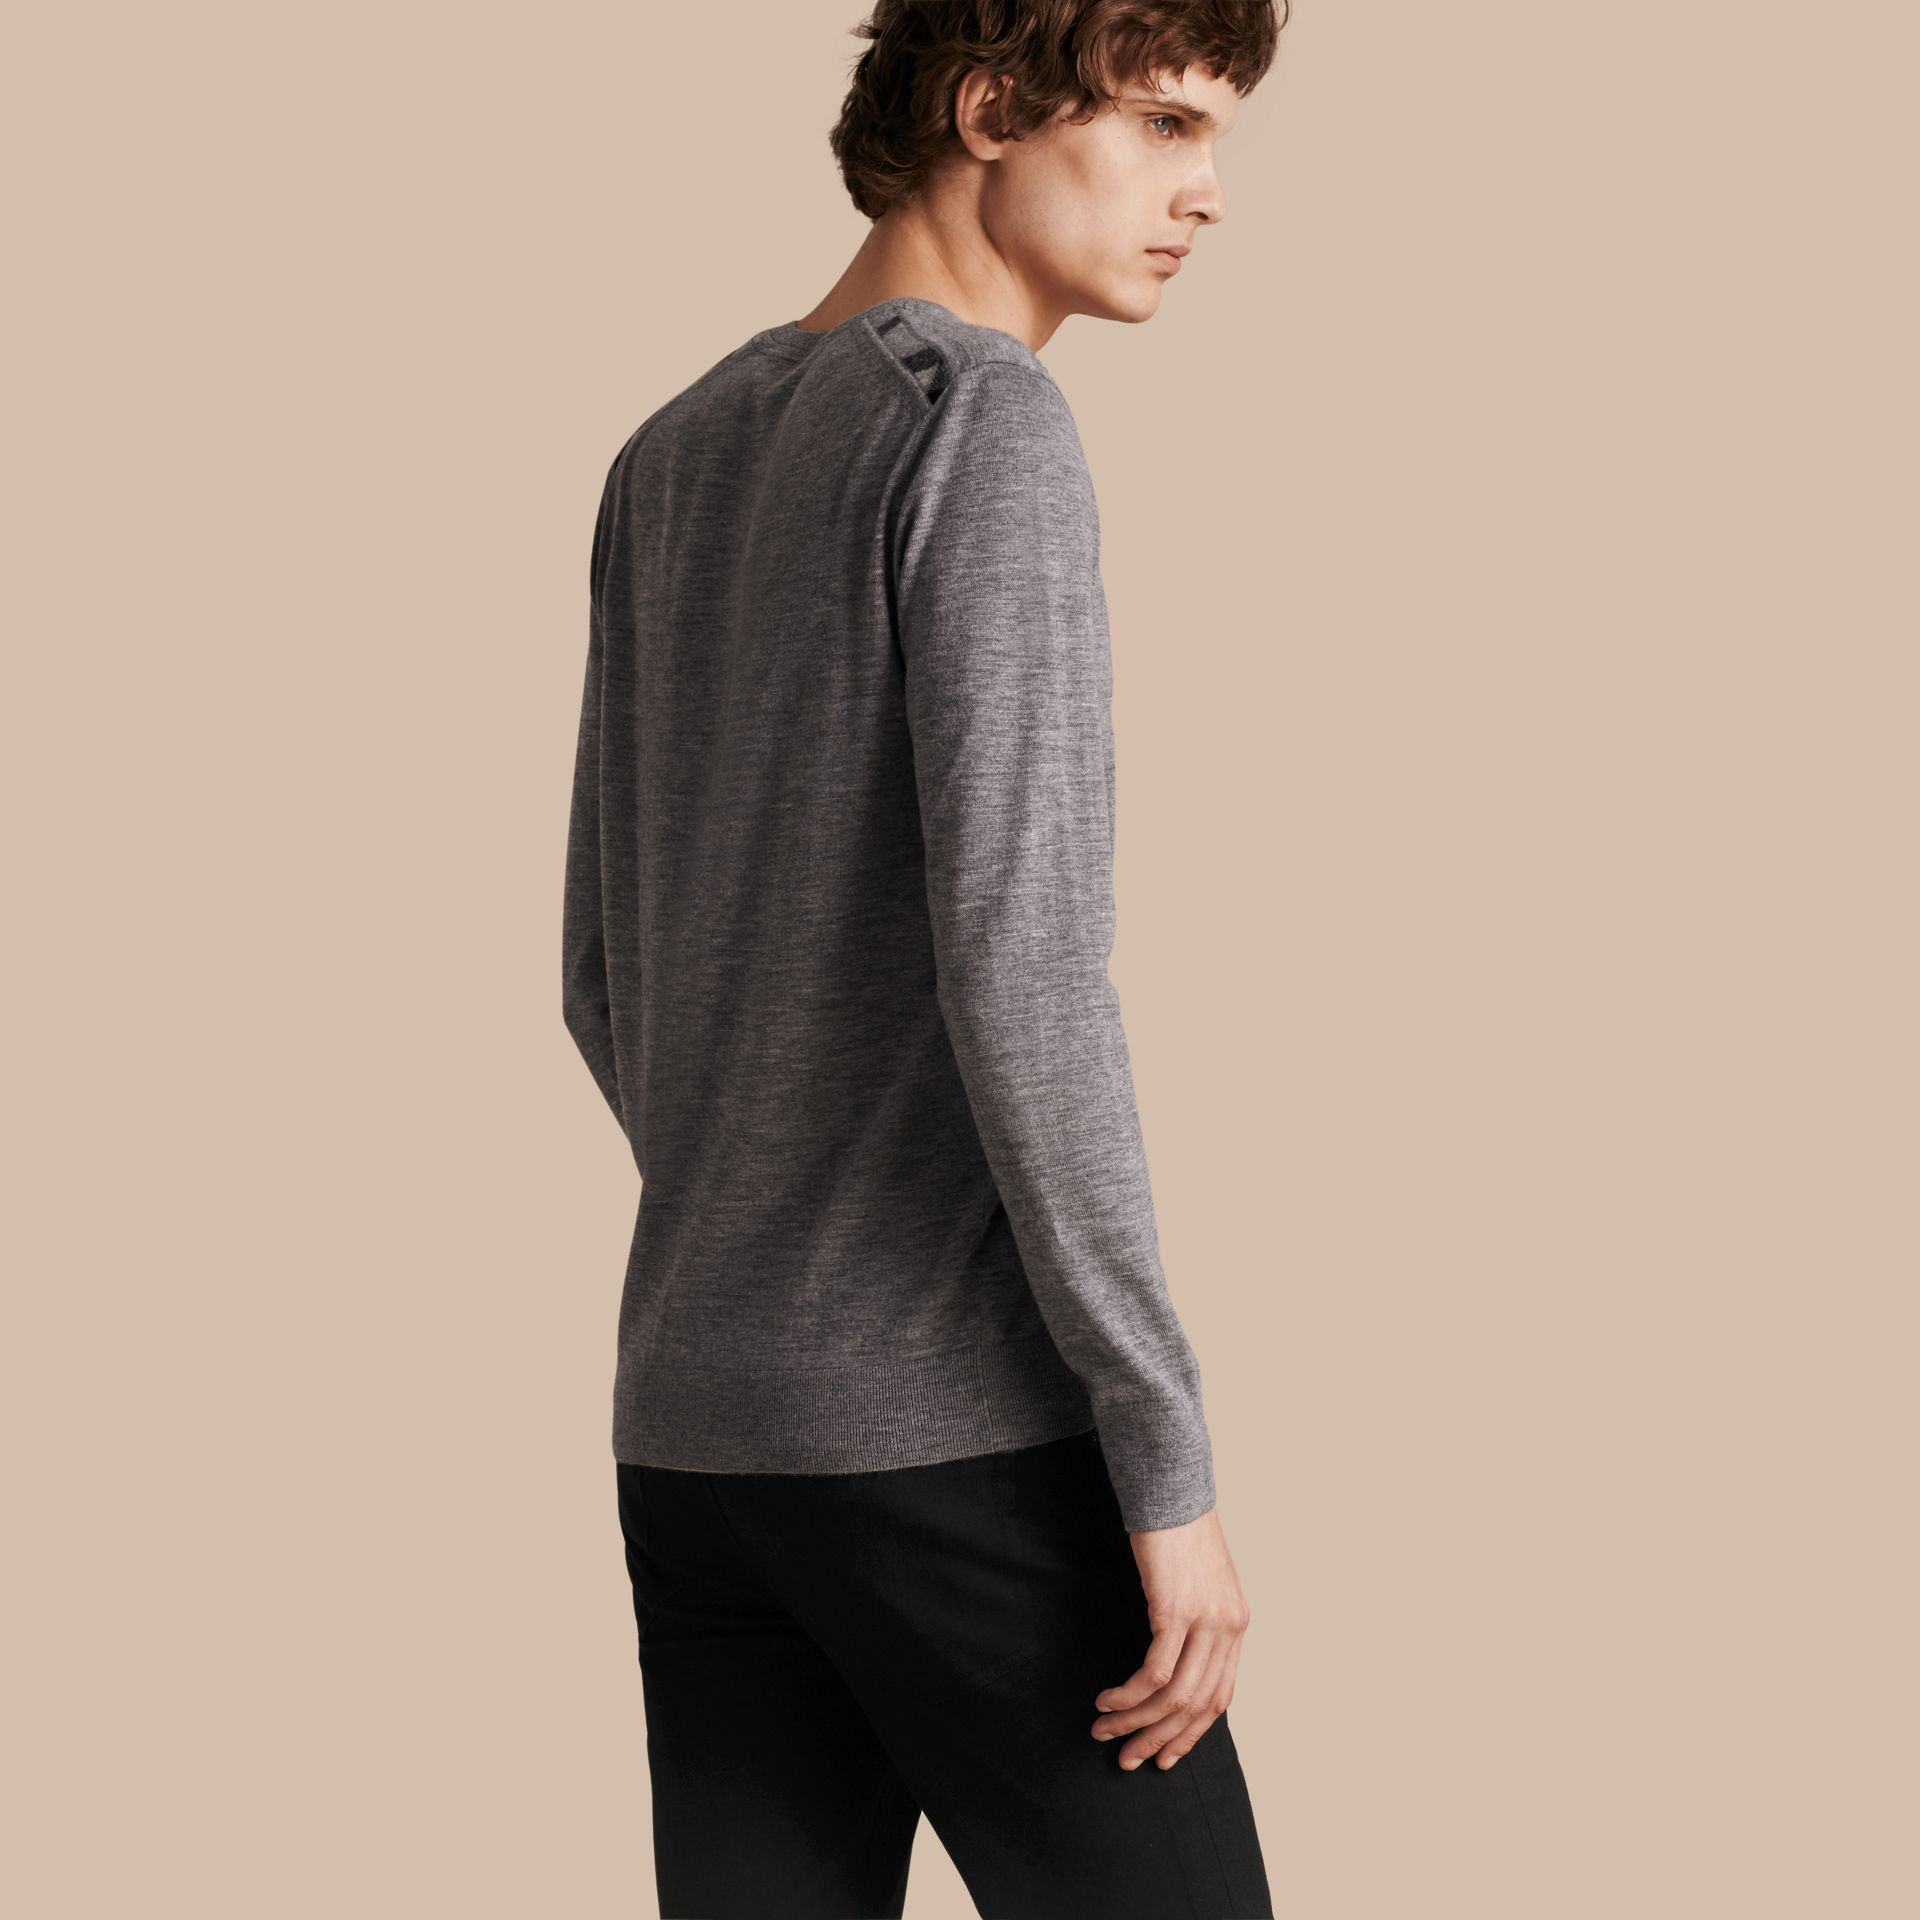 Pale grey melange Lightweight Crew Neck Cashmere Sweater with Check Trim Pale Grey Melange - gallery image 1